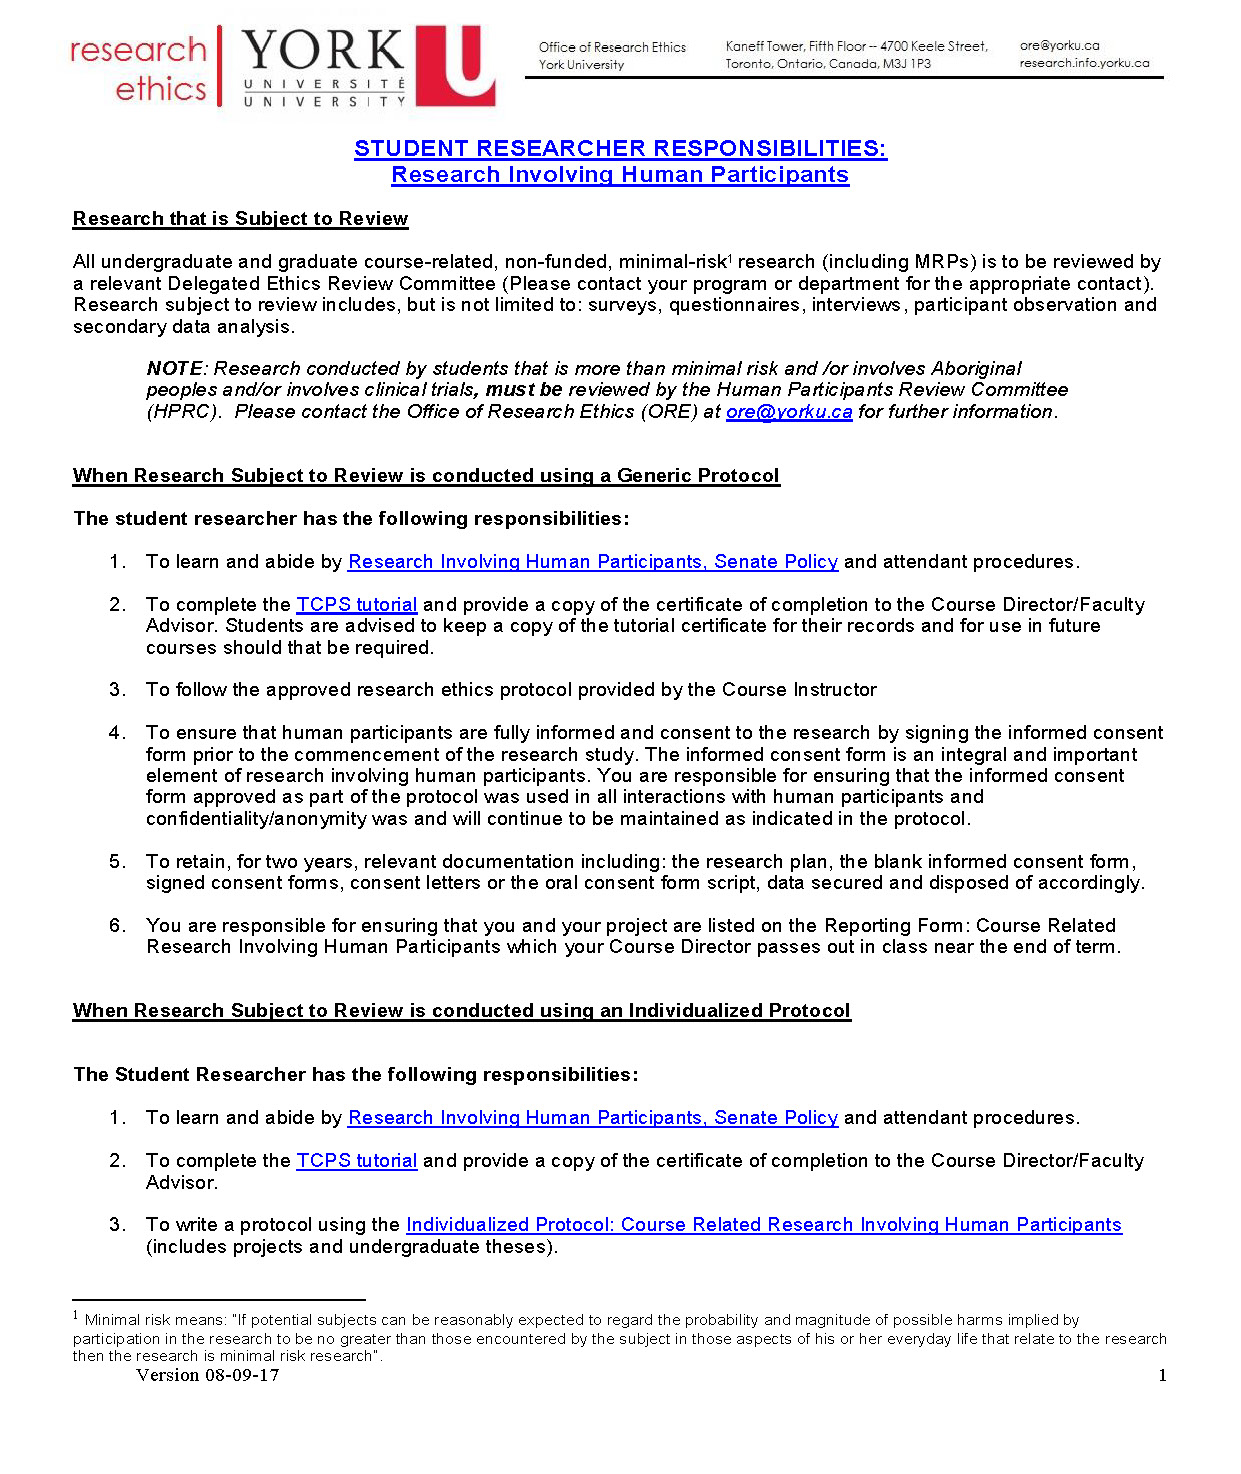 full-size image of student research responsibilities from research ethics page 1